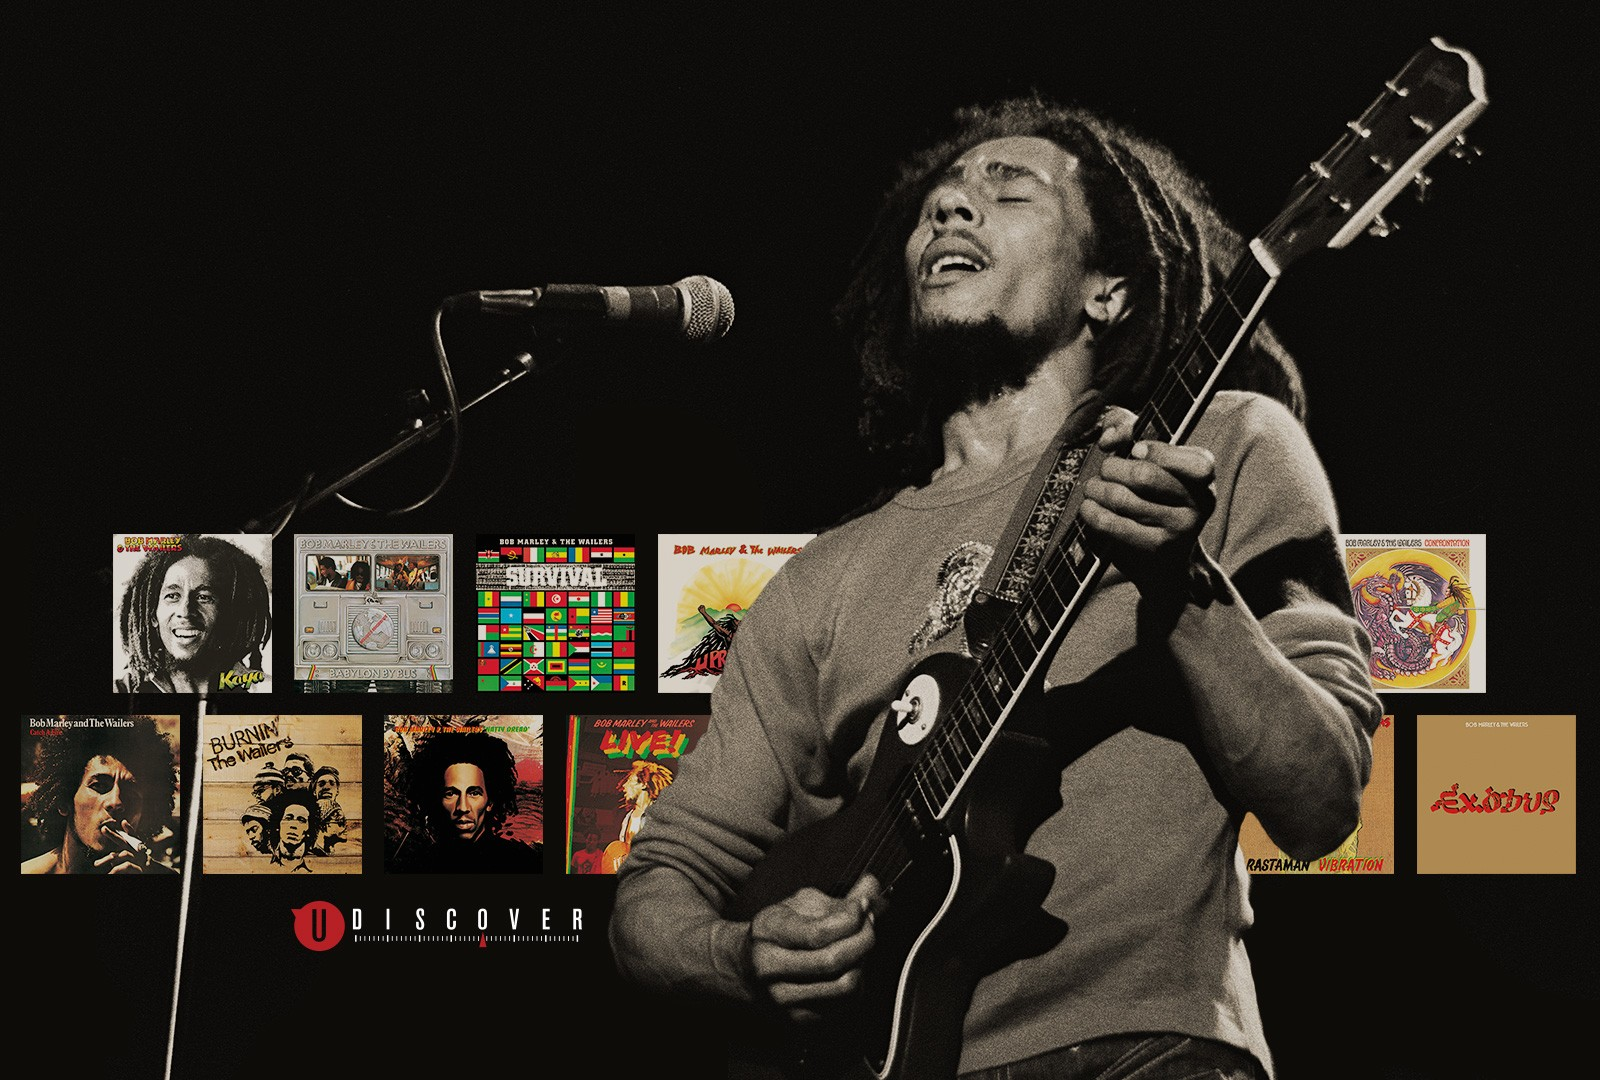 a biography of bob marley a jamaican musician Bob marley was a hero figure,  author of the acclaimed bob marley biography catch a fire:  bob marley left germany for his jamaican home,.